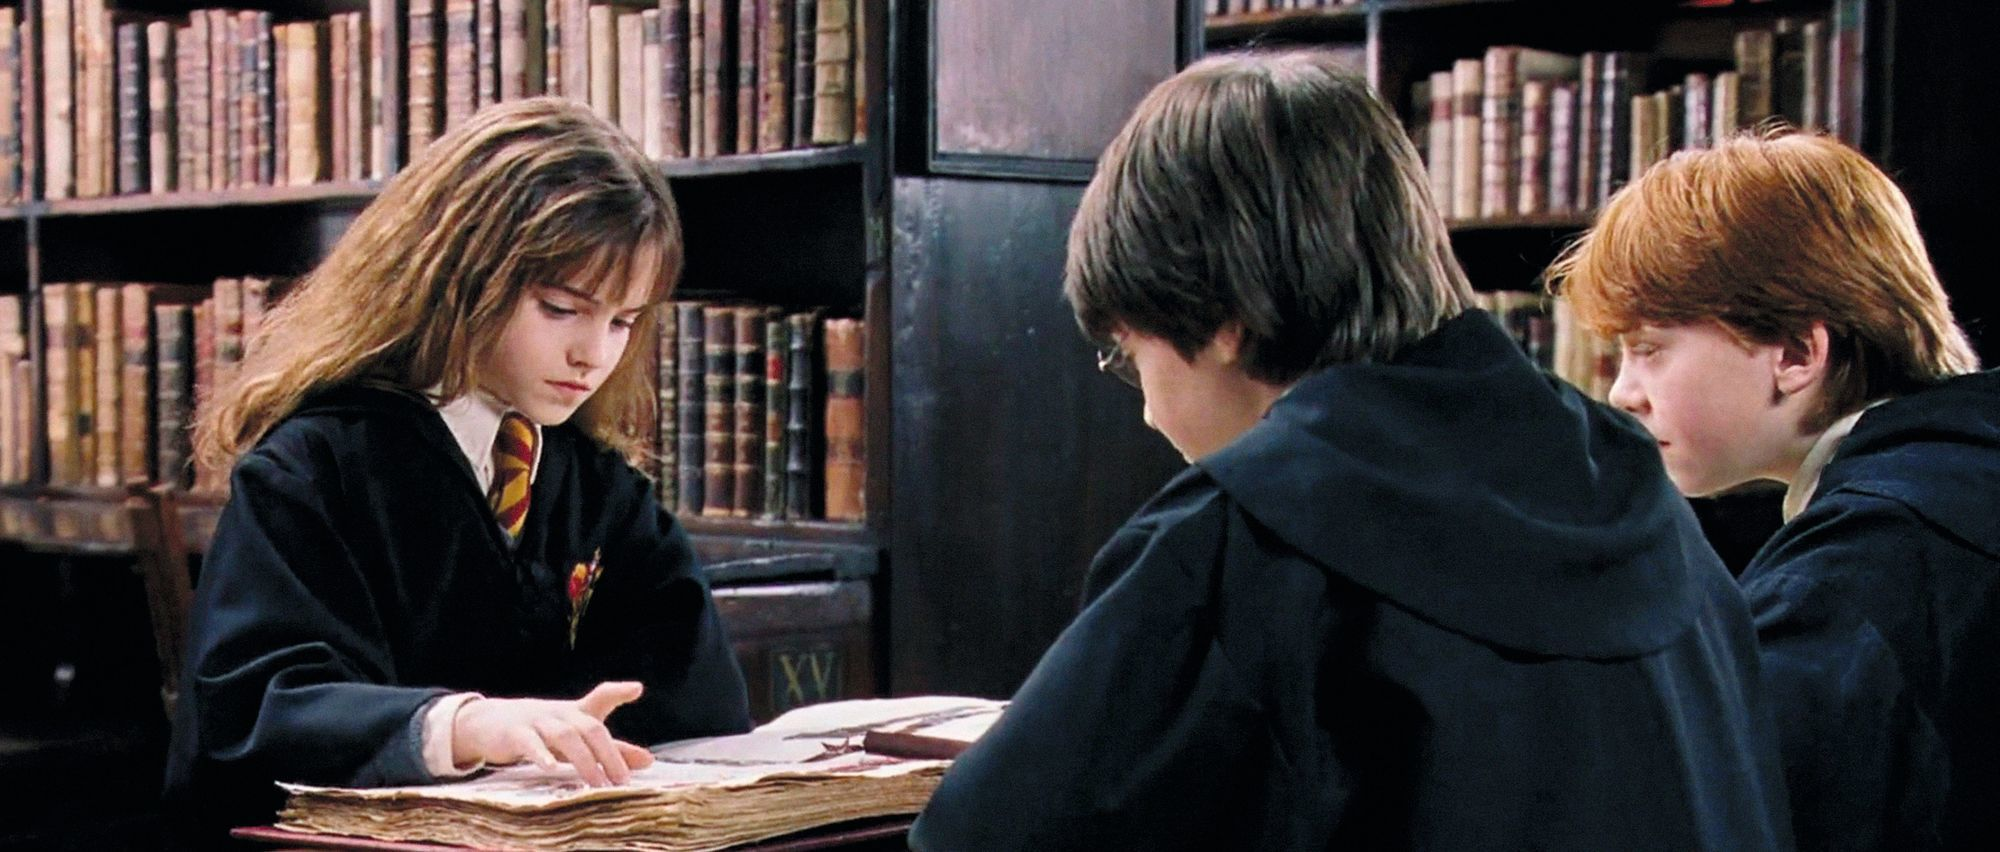 Hermione à la bibliotheque - Harry Potter